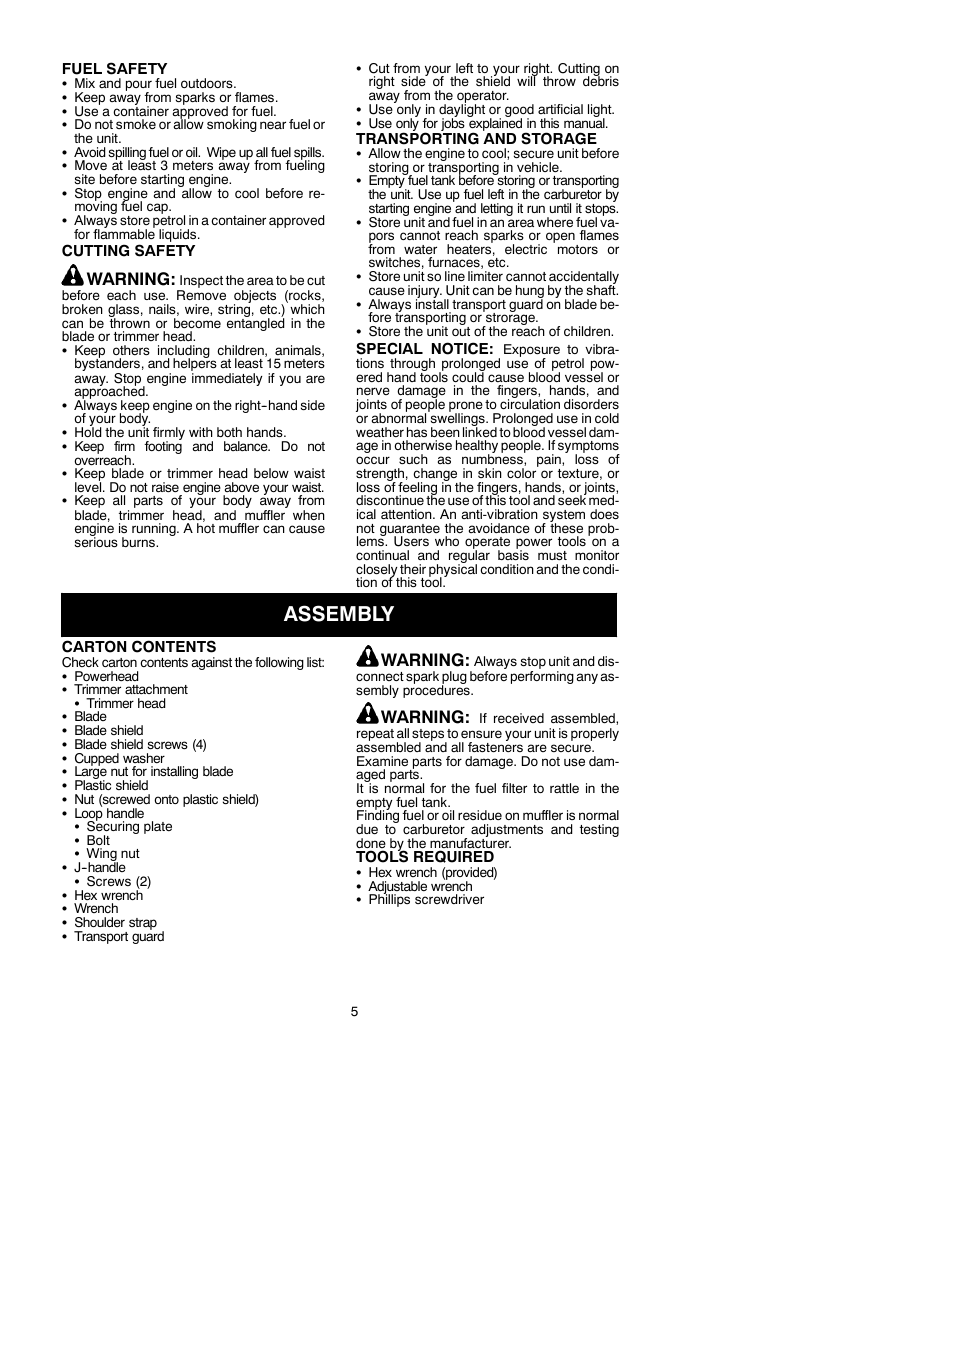 Assembly, Warning | McCulloch Cabrio 115249726 User Manual | Page 5 / 21